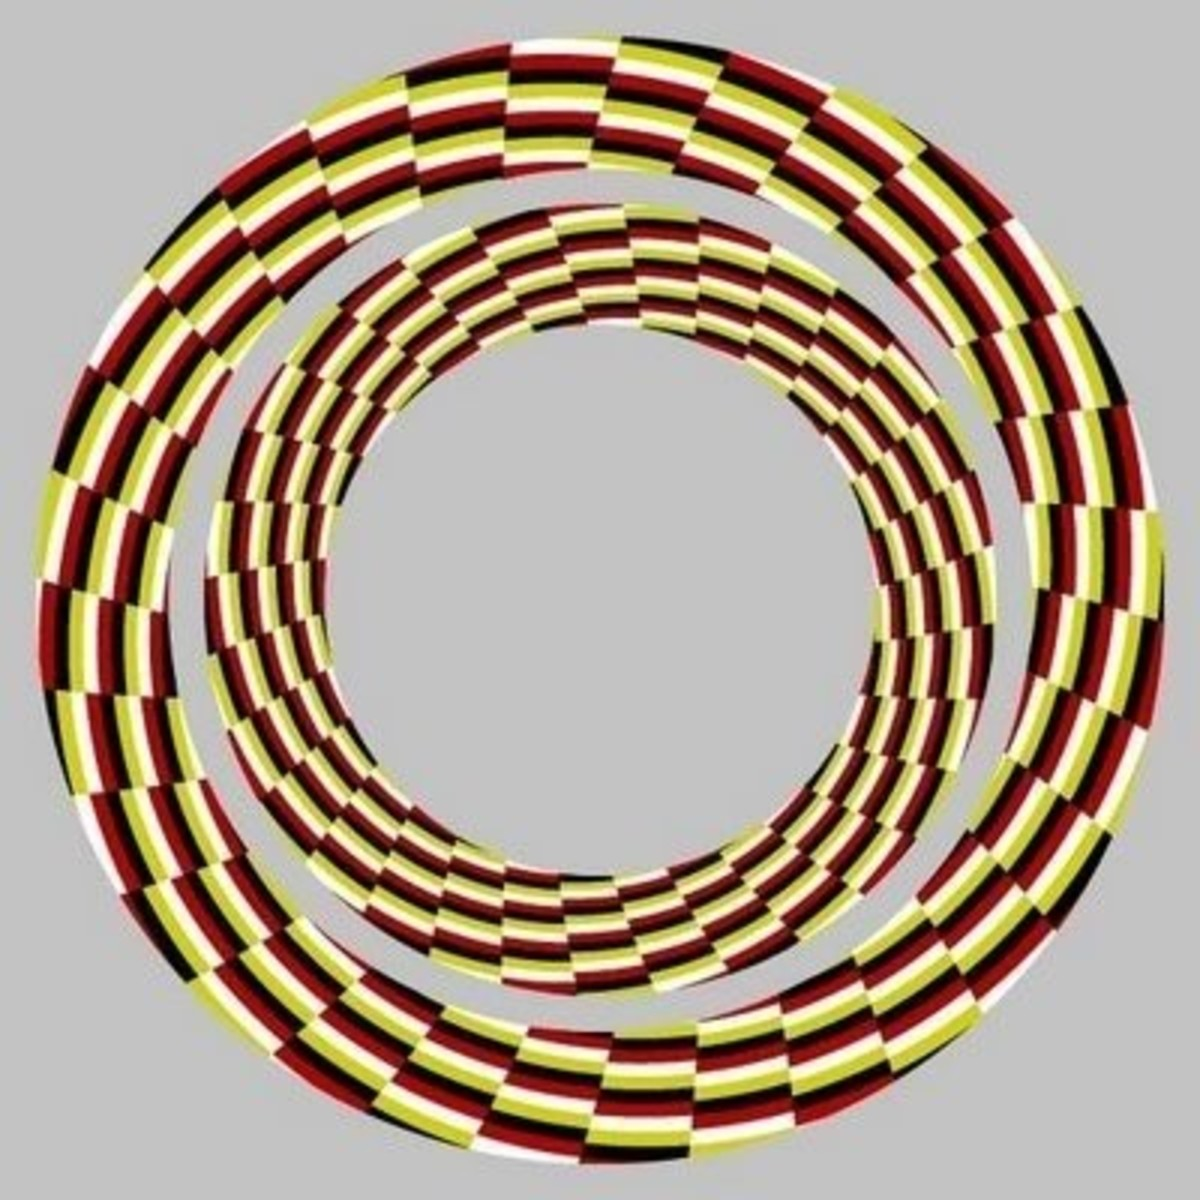 Visual illusion where the rope appears to swirl and move towards you